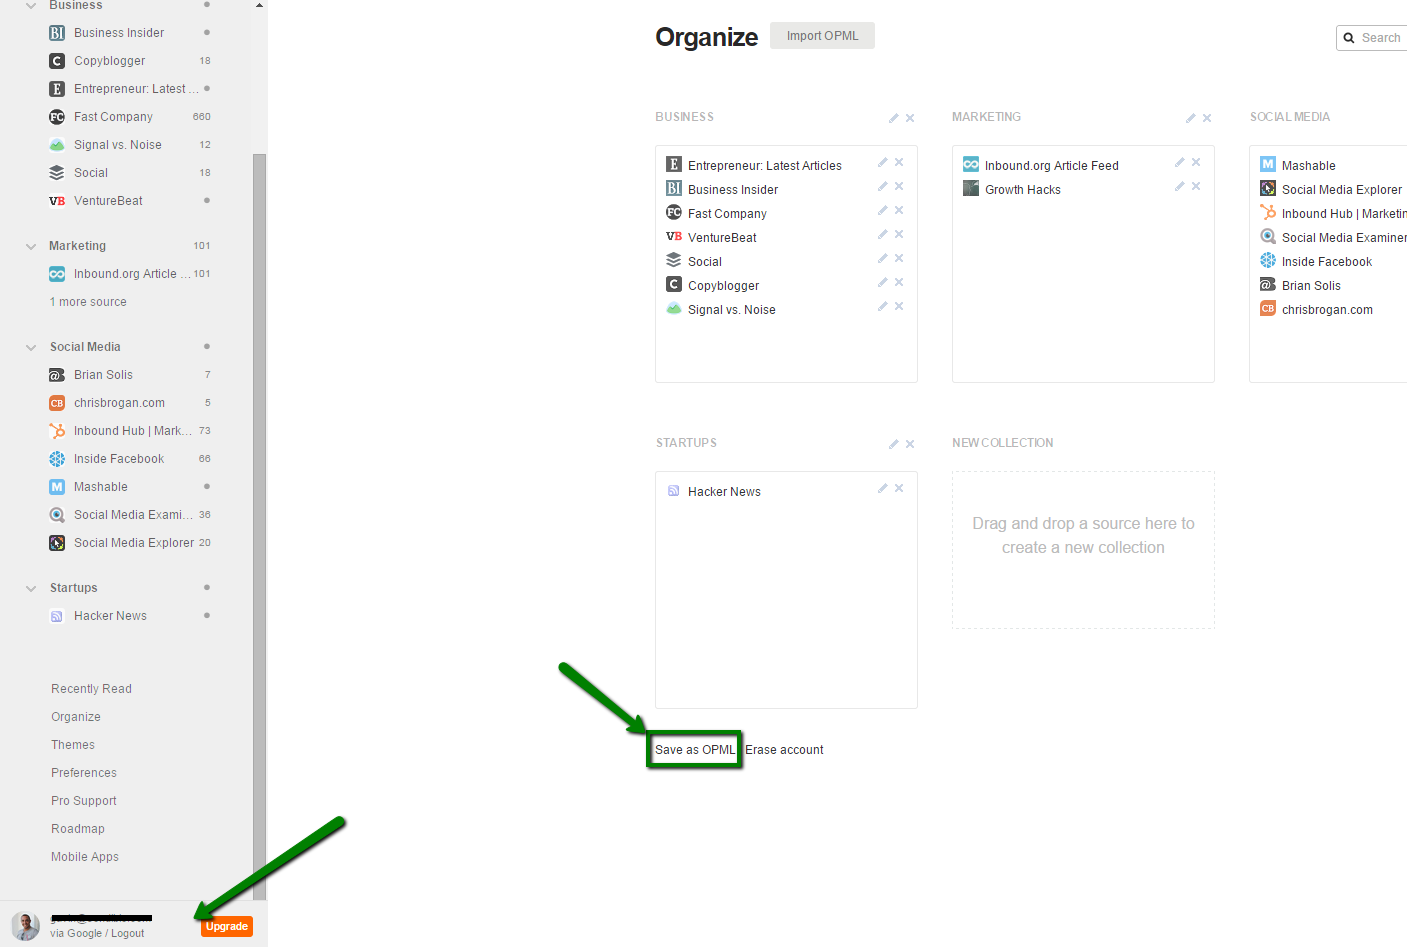 Feedly - Export OPML